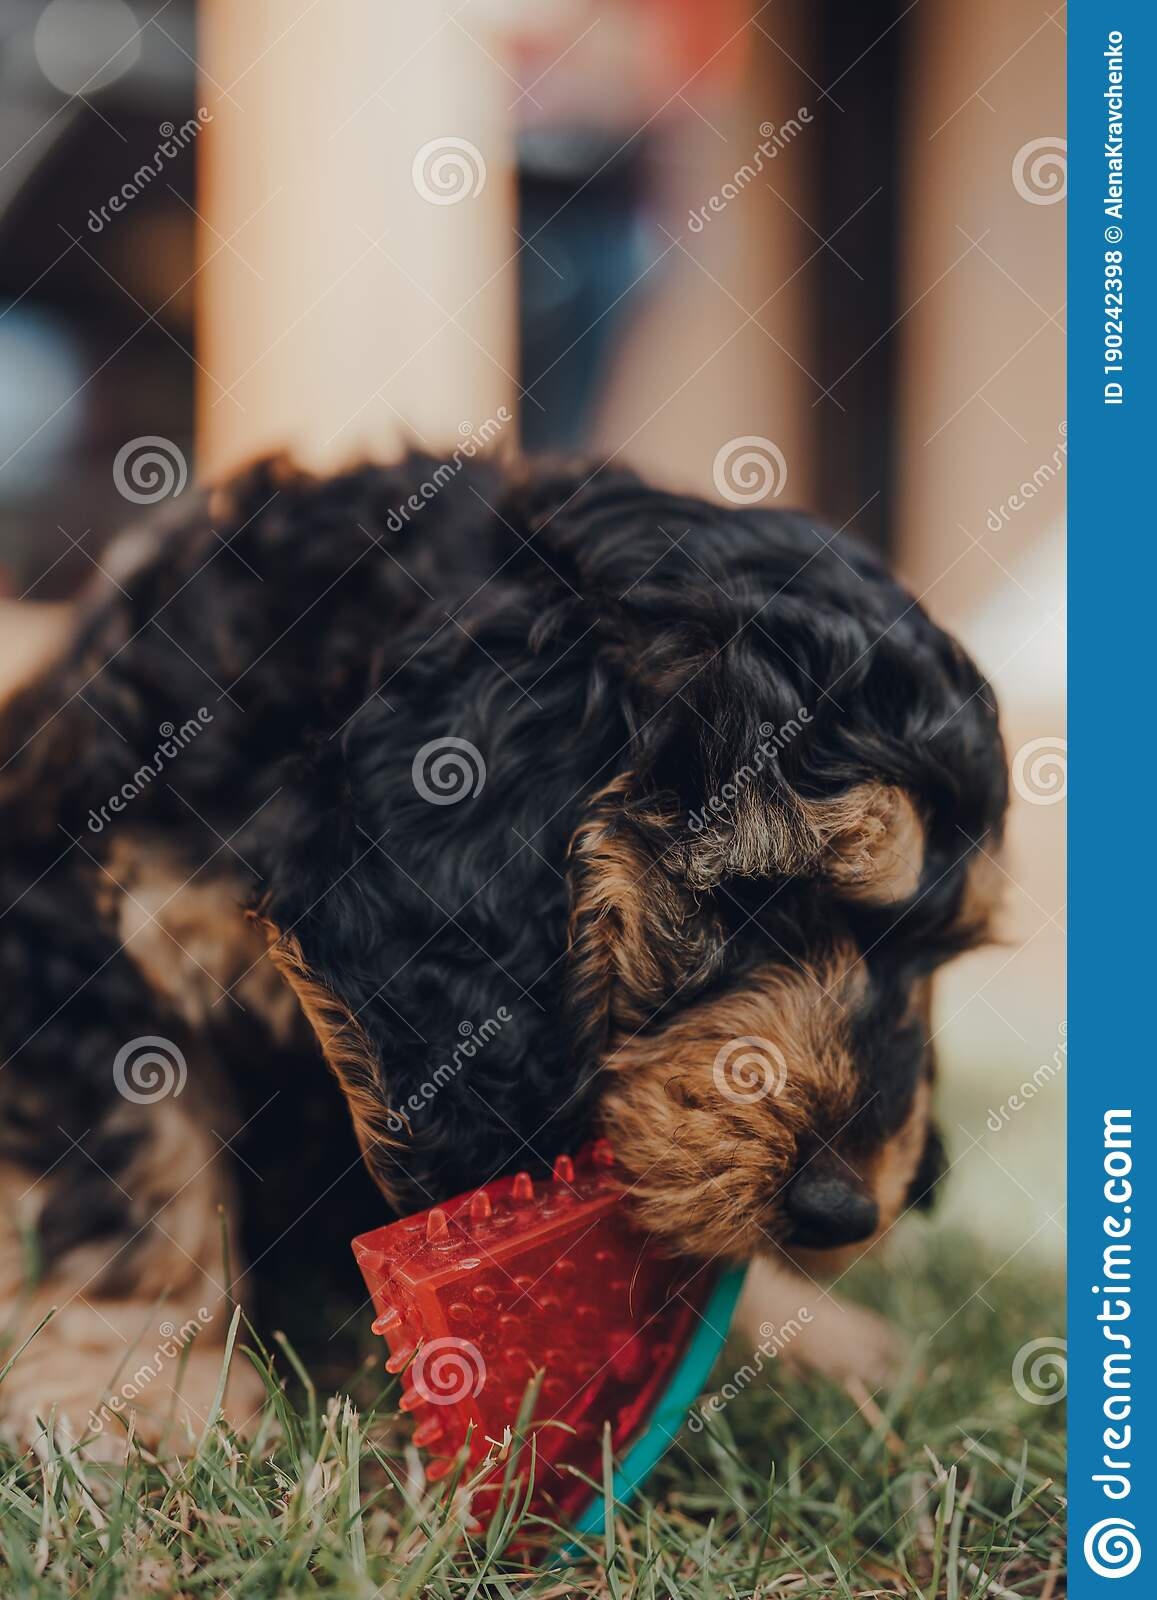 Close Up Of A Cute Cockapoo Puppy Playing With A Chewy Toy In A Garden Selective Focus Stock Photo Image Of Level Blur 190242398